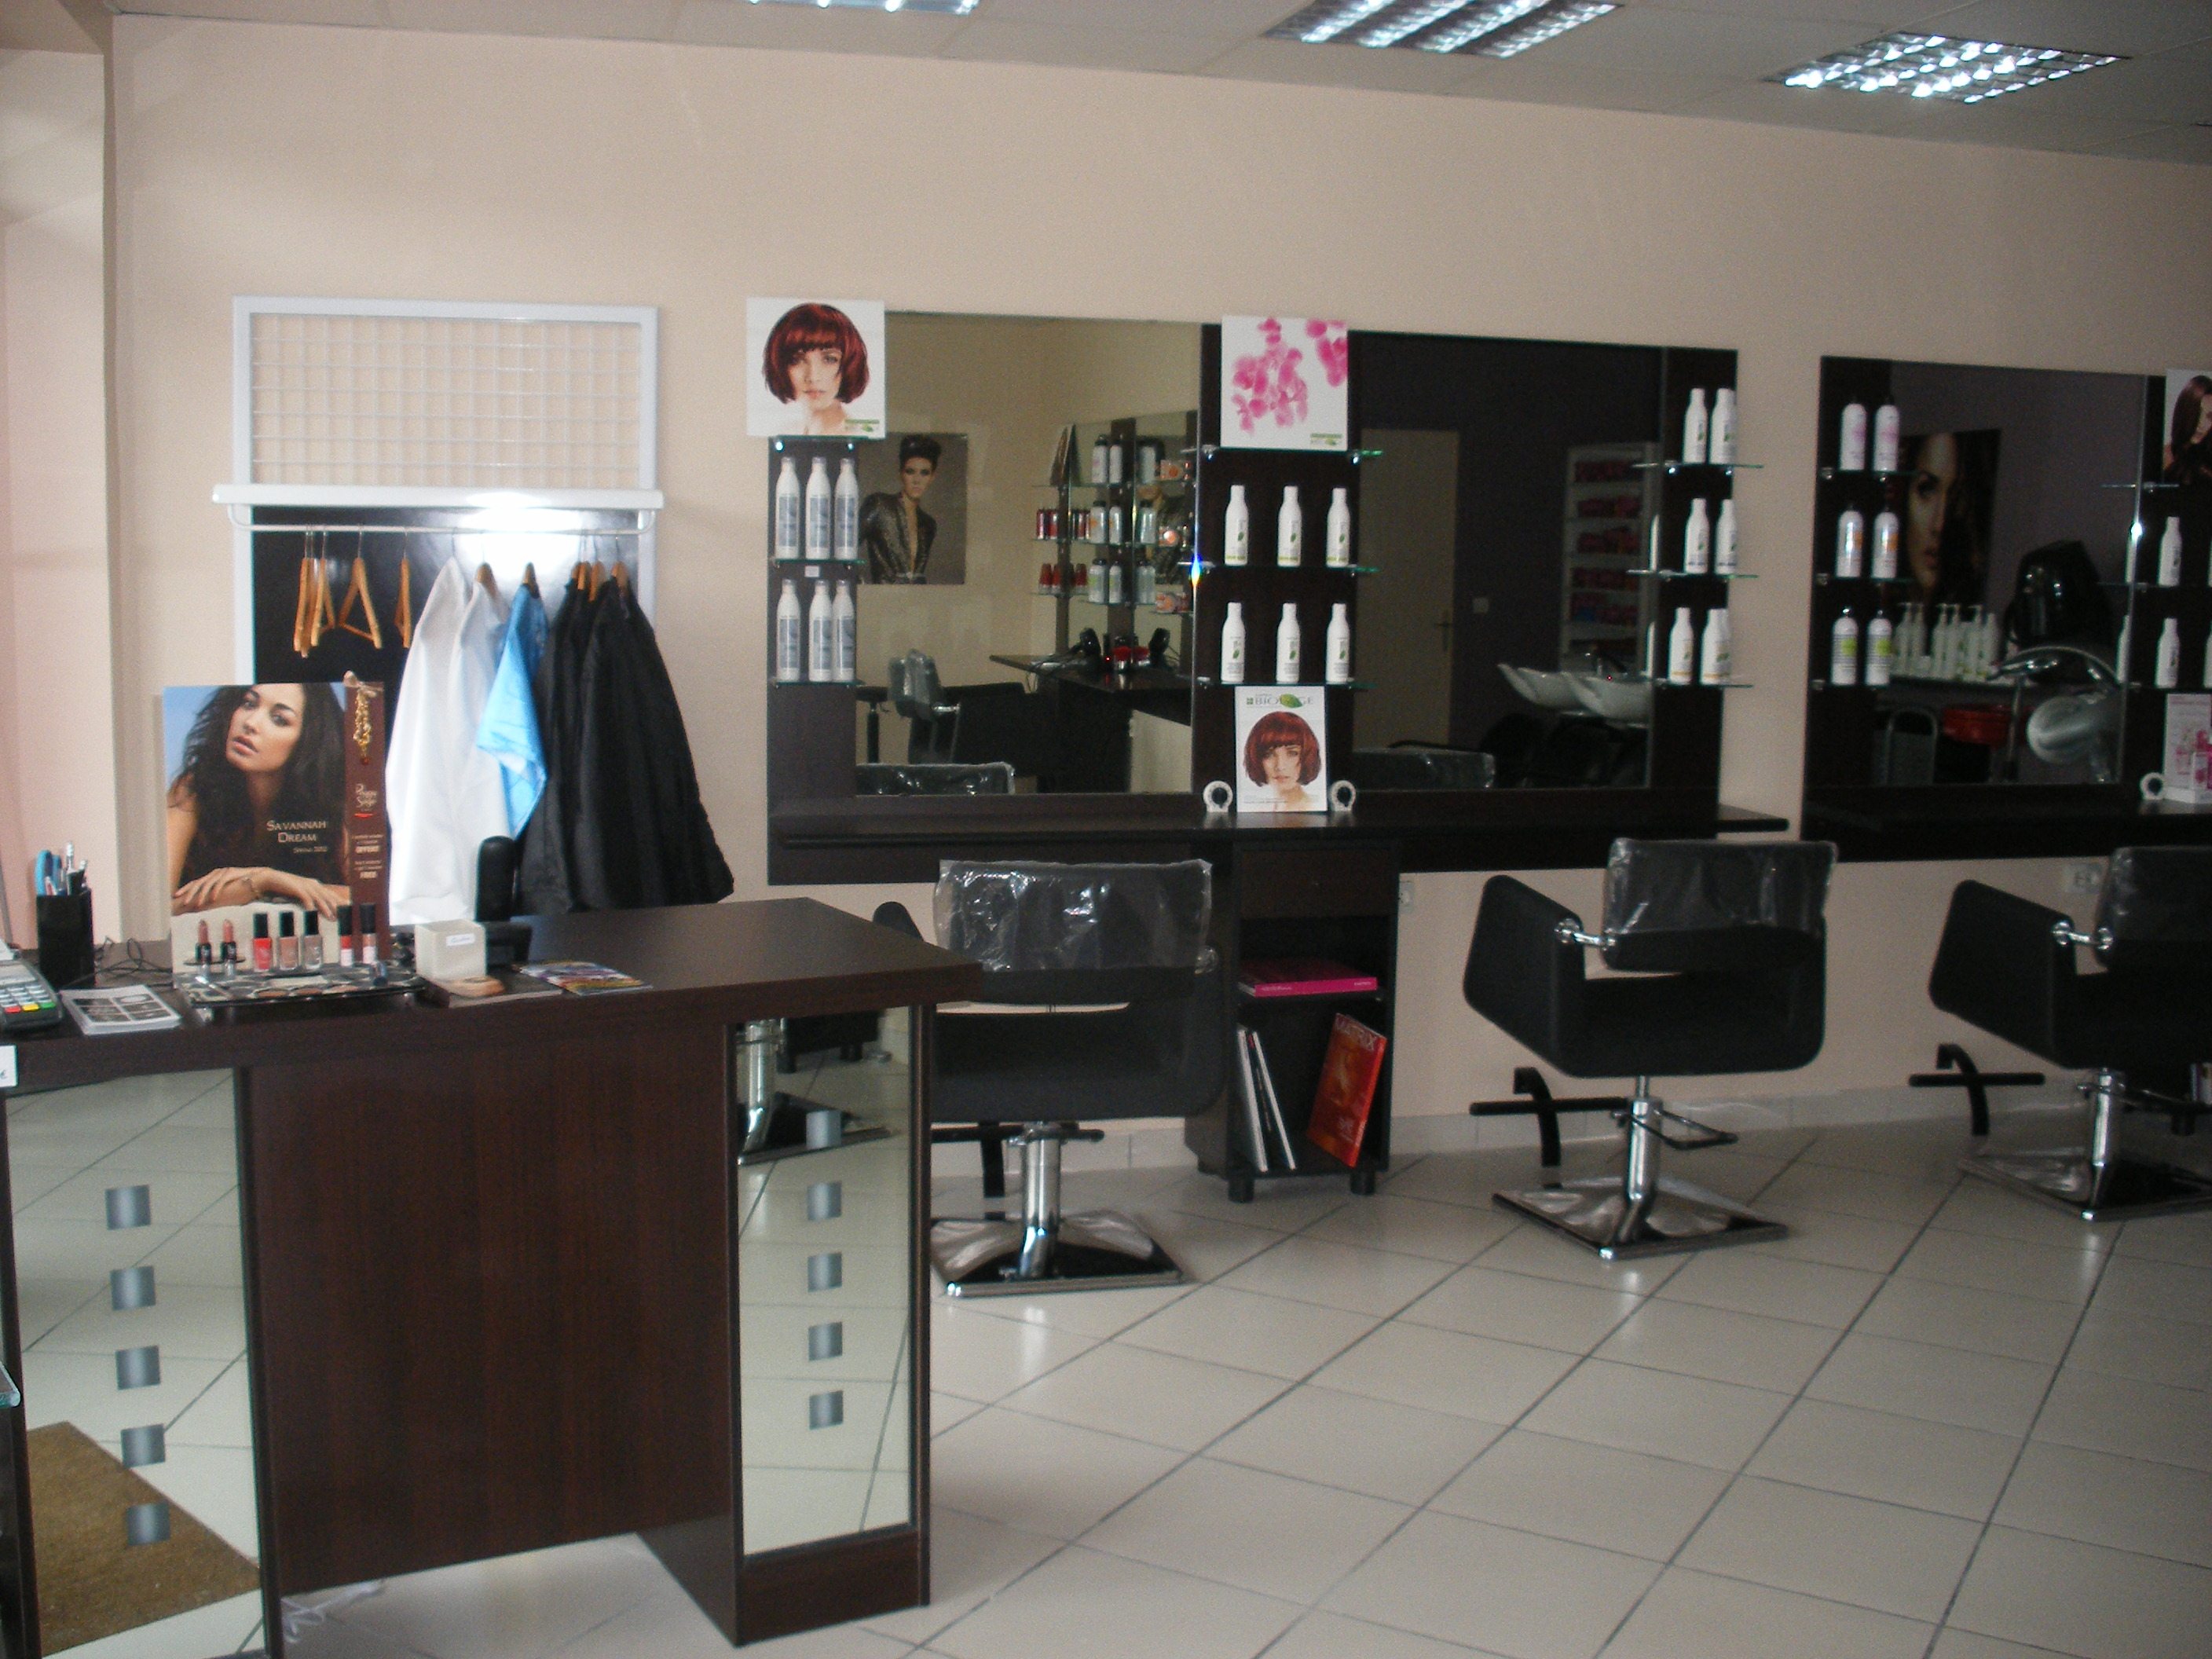 les design 39 hair coiffure amilly avis tarifs horaires. Black Bedroom Furniture Sets. Home Design Ideas